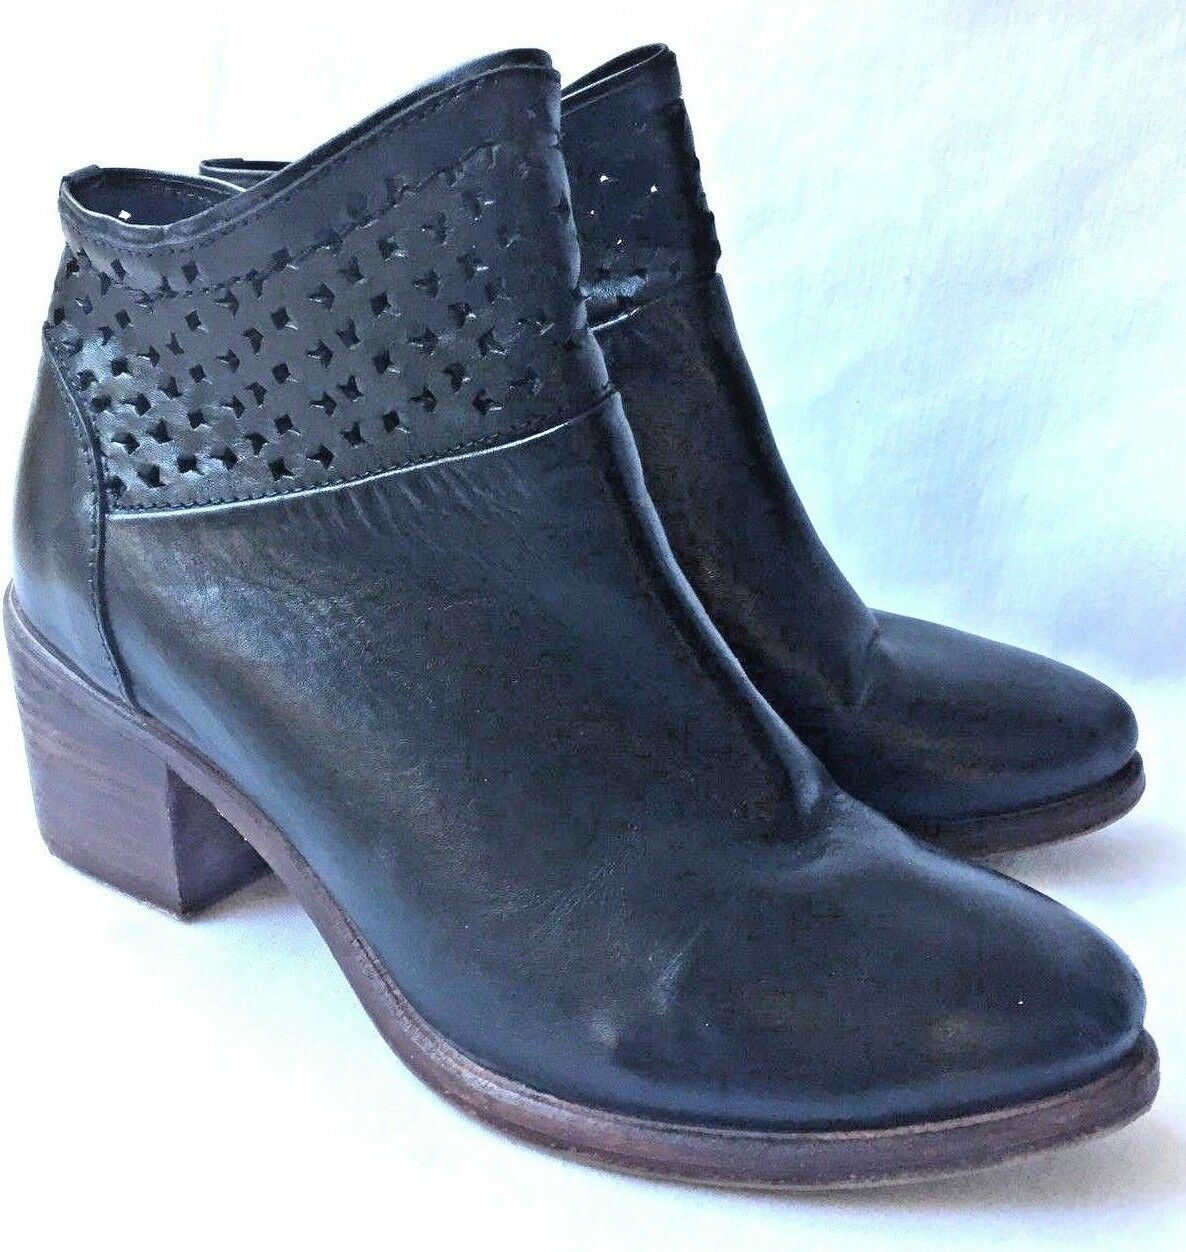 229 Kelsi Dagger Brooklyn Glenwood Ankle Boot Bootie Black Leather Perforated 8